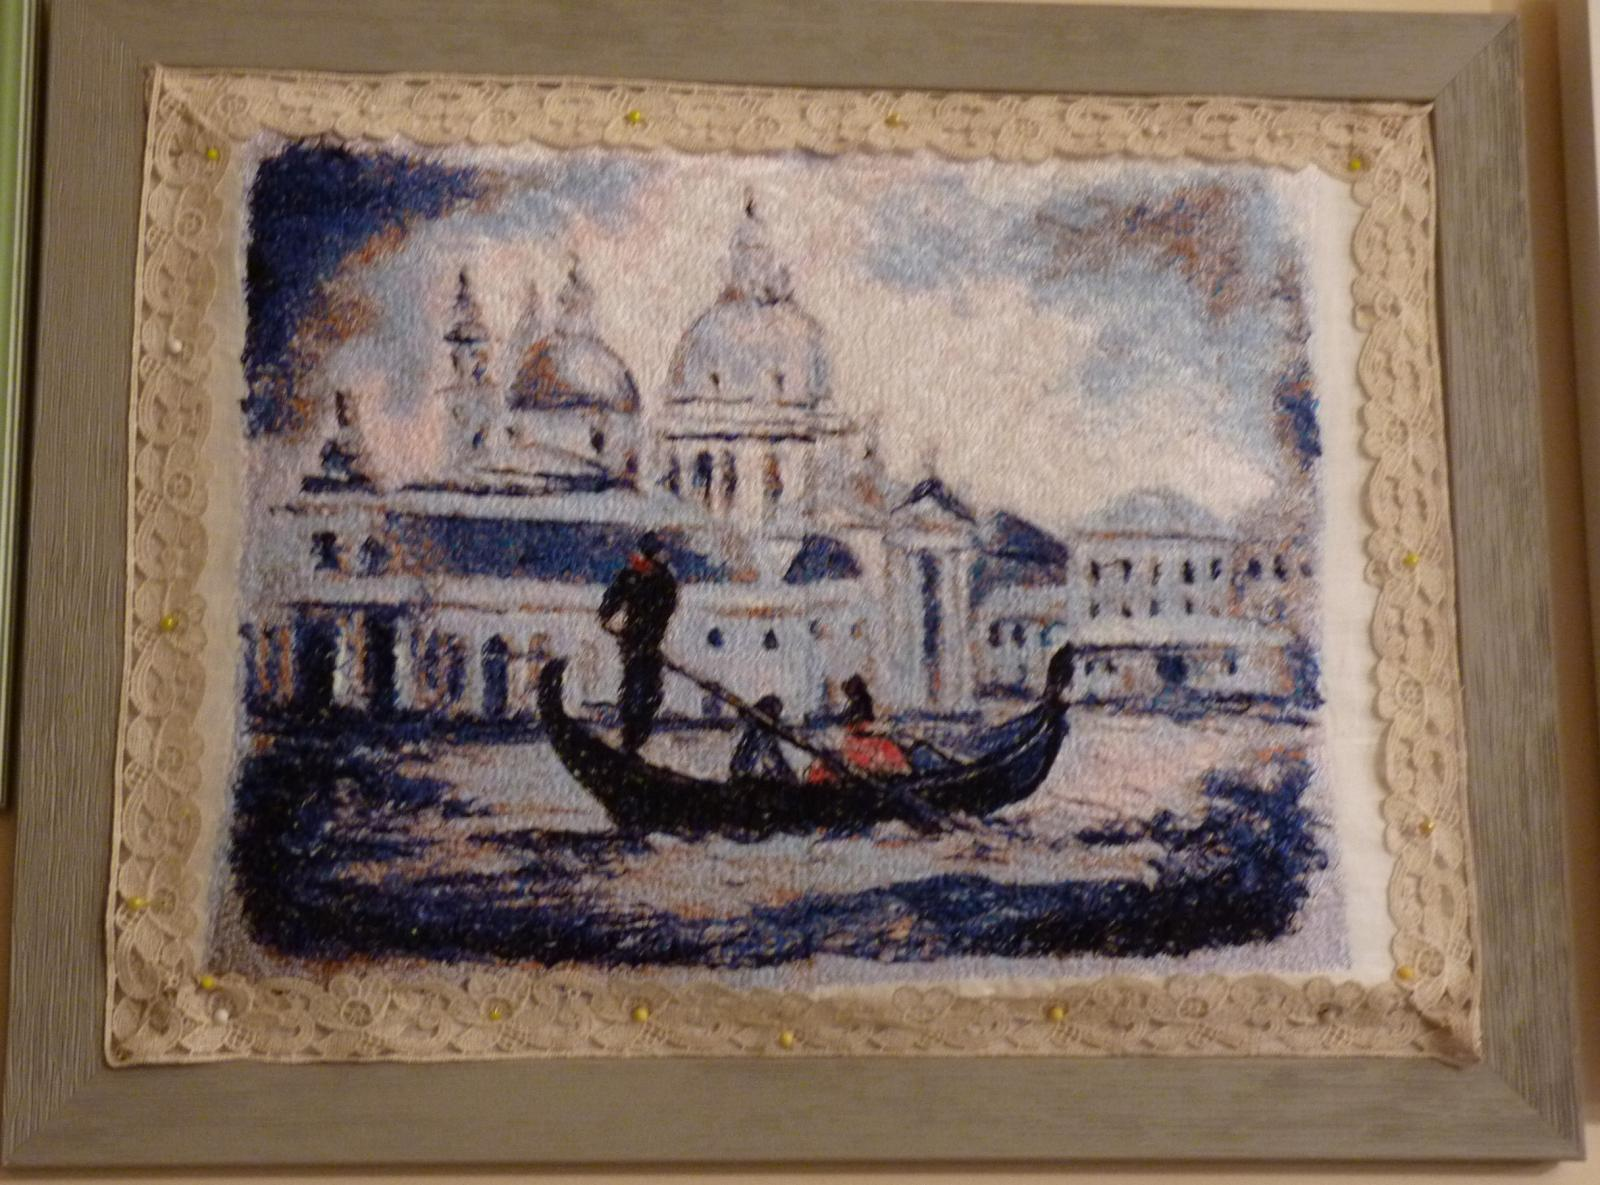 Framed Venizia travel to river free embroidery design